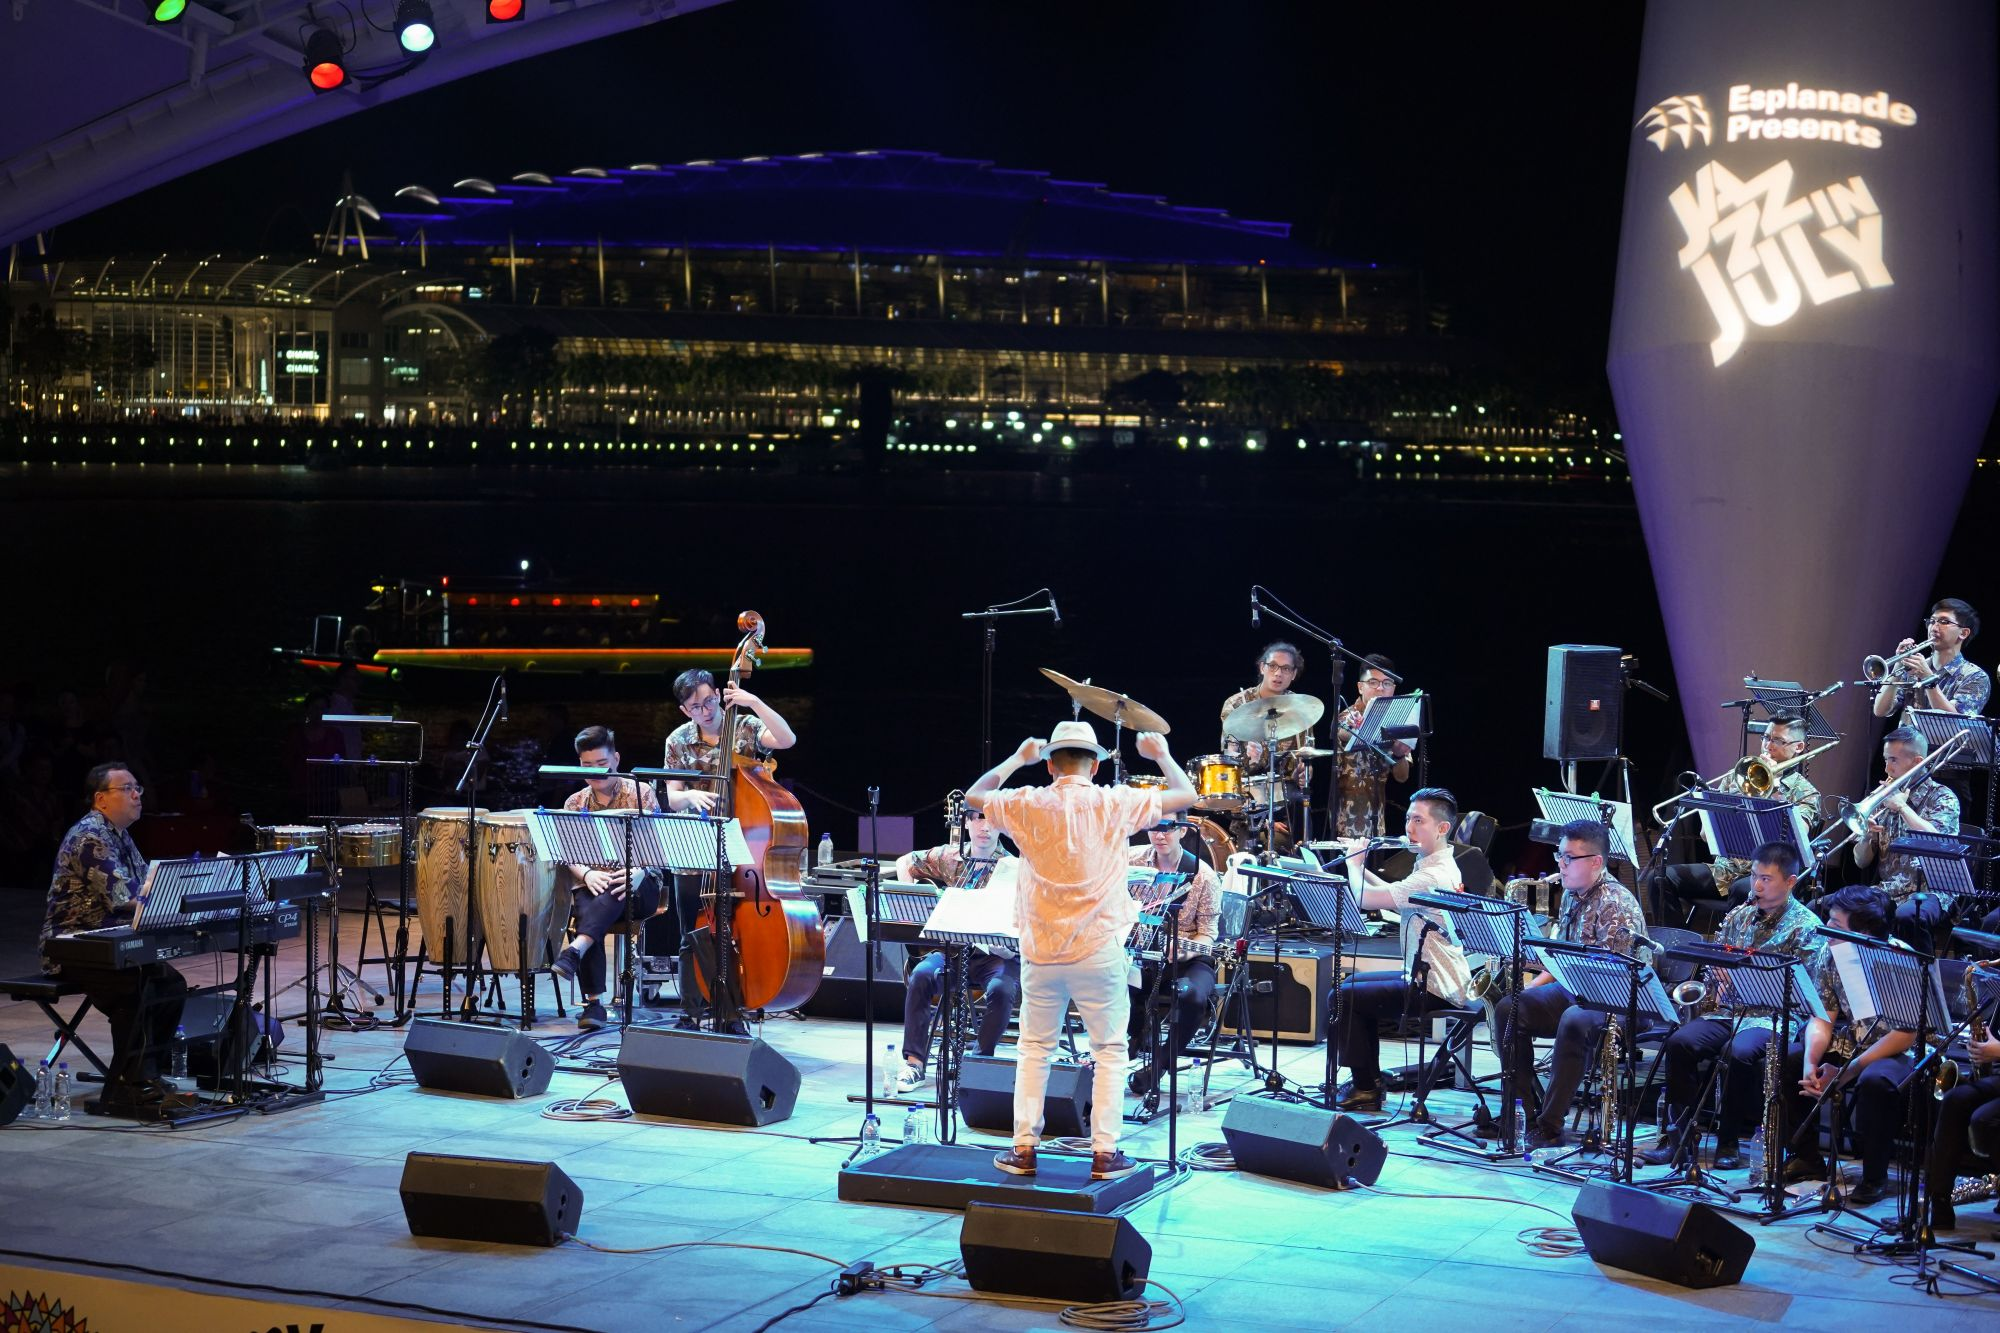 This Jazz Association Is Making Waves In Singapore's Music Scene